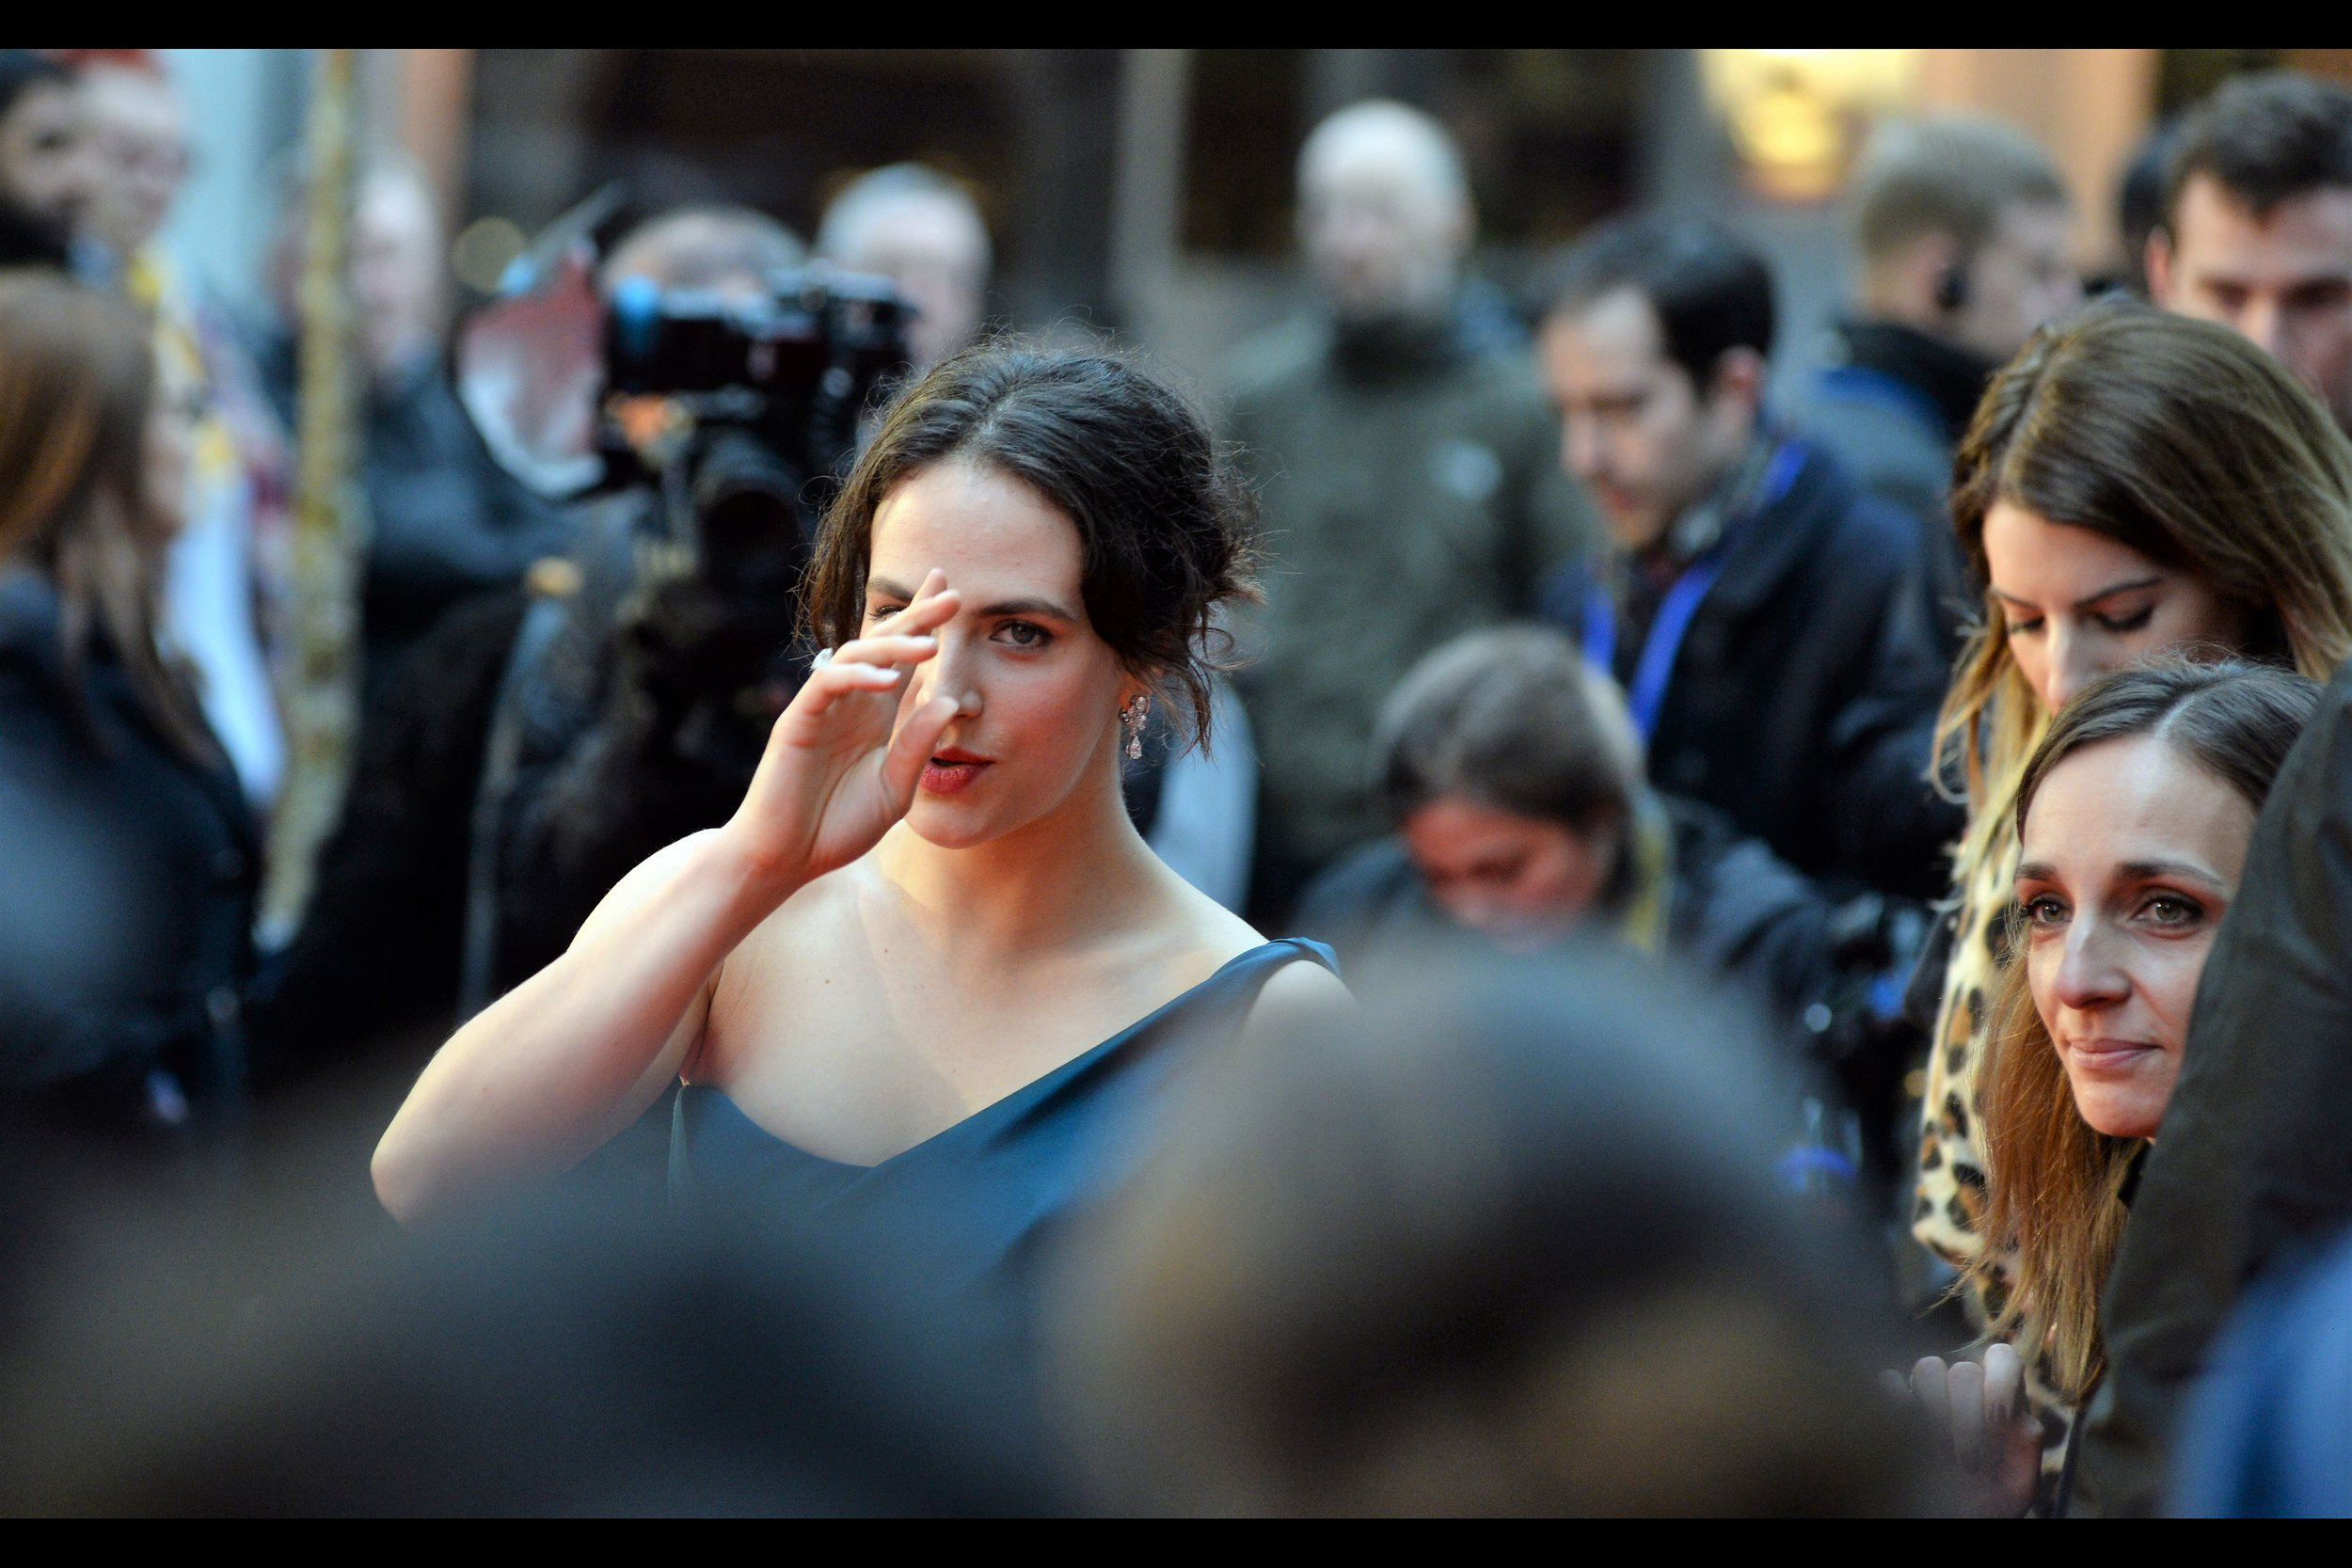 """""""This is how I make sure you only photograph my good side""""  - Jessica Brown Findlay was in 20 episodes of 'Downton Abbey', as well as the movie    'A New York Winter's Tale'    which... well... let's not mention A New York Winter's Tale any more than we have to."""